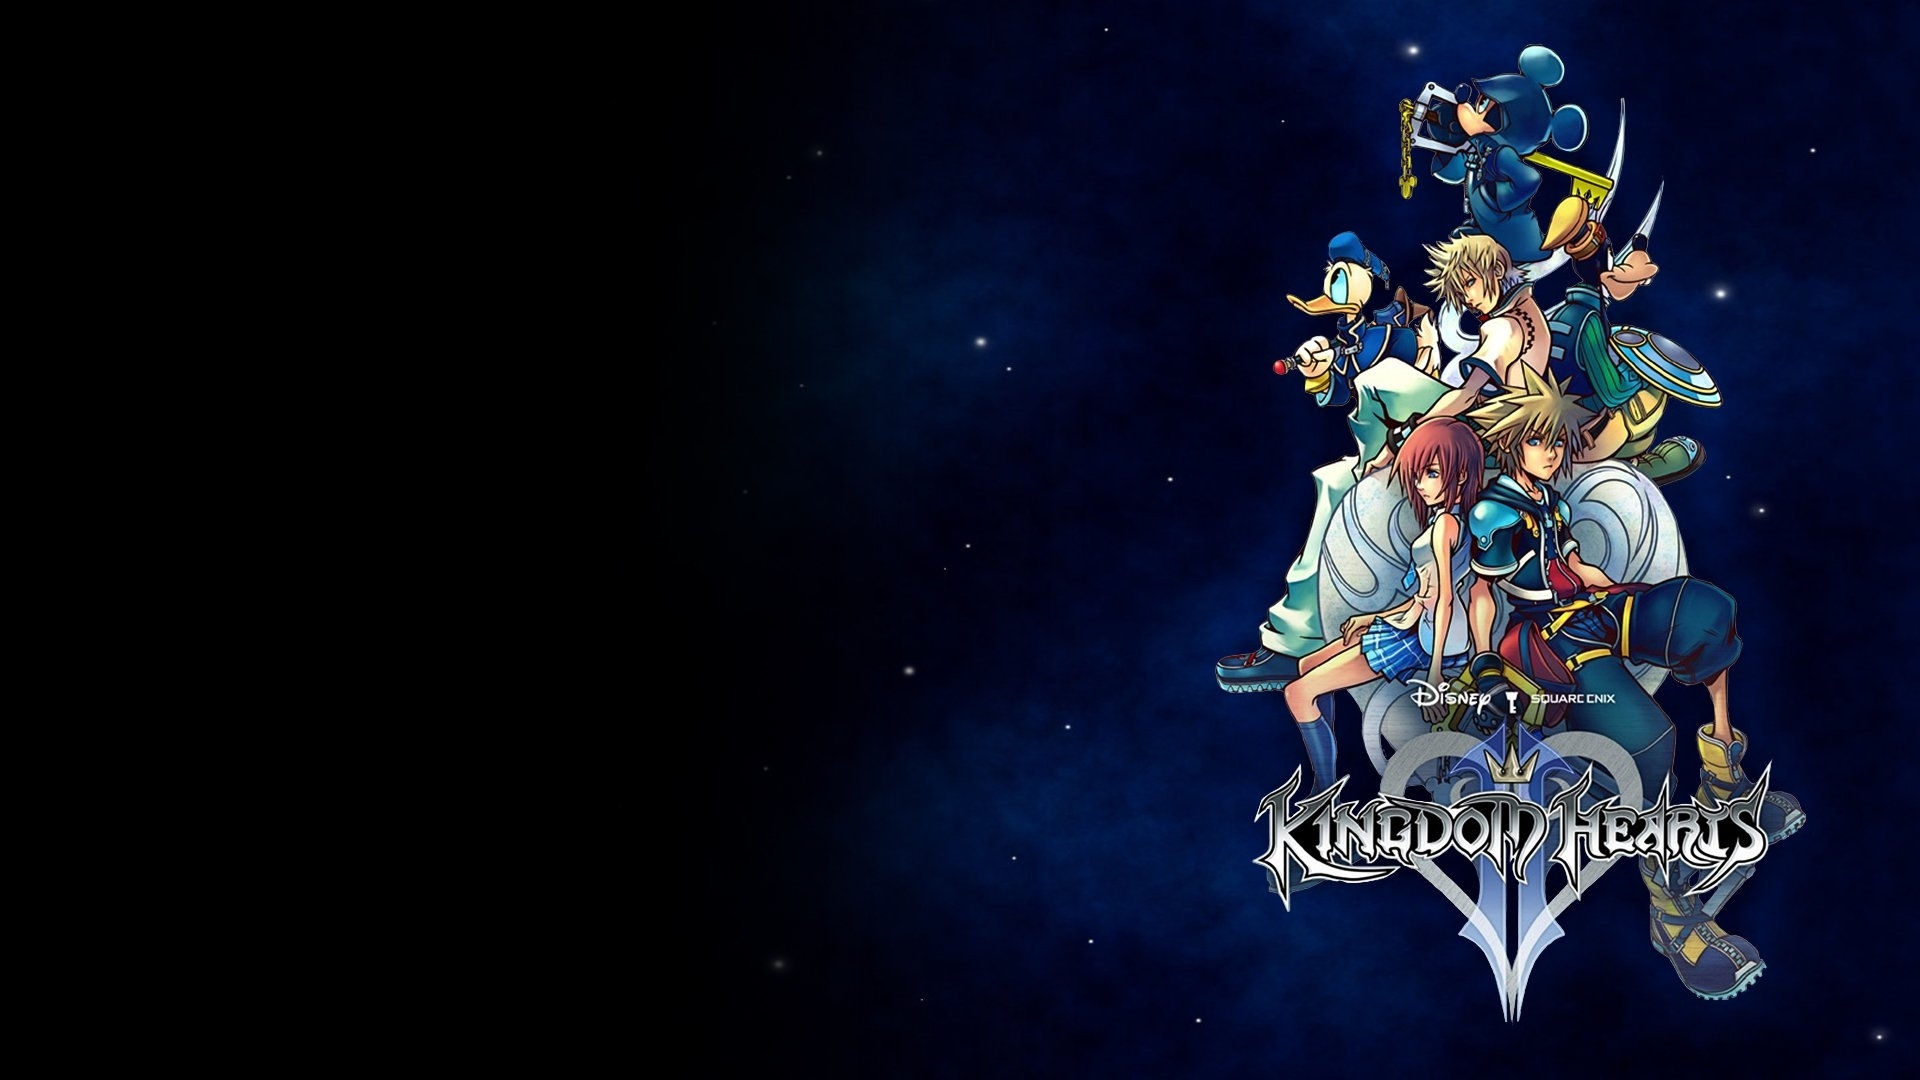 5 kingdom hearts ii hd wallpapers | background images - wallpaper